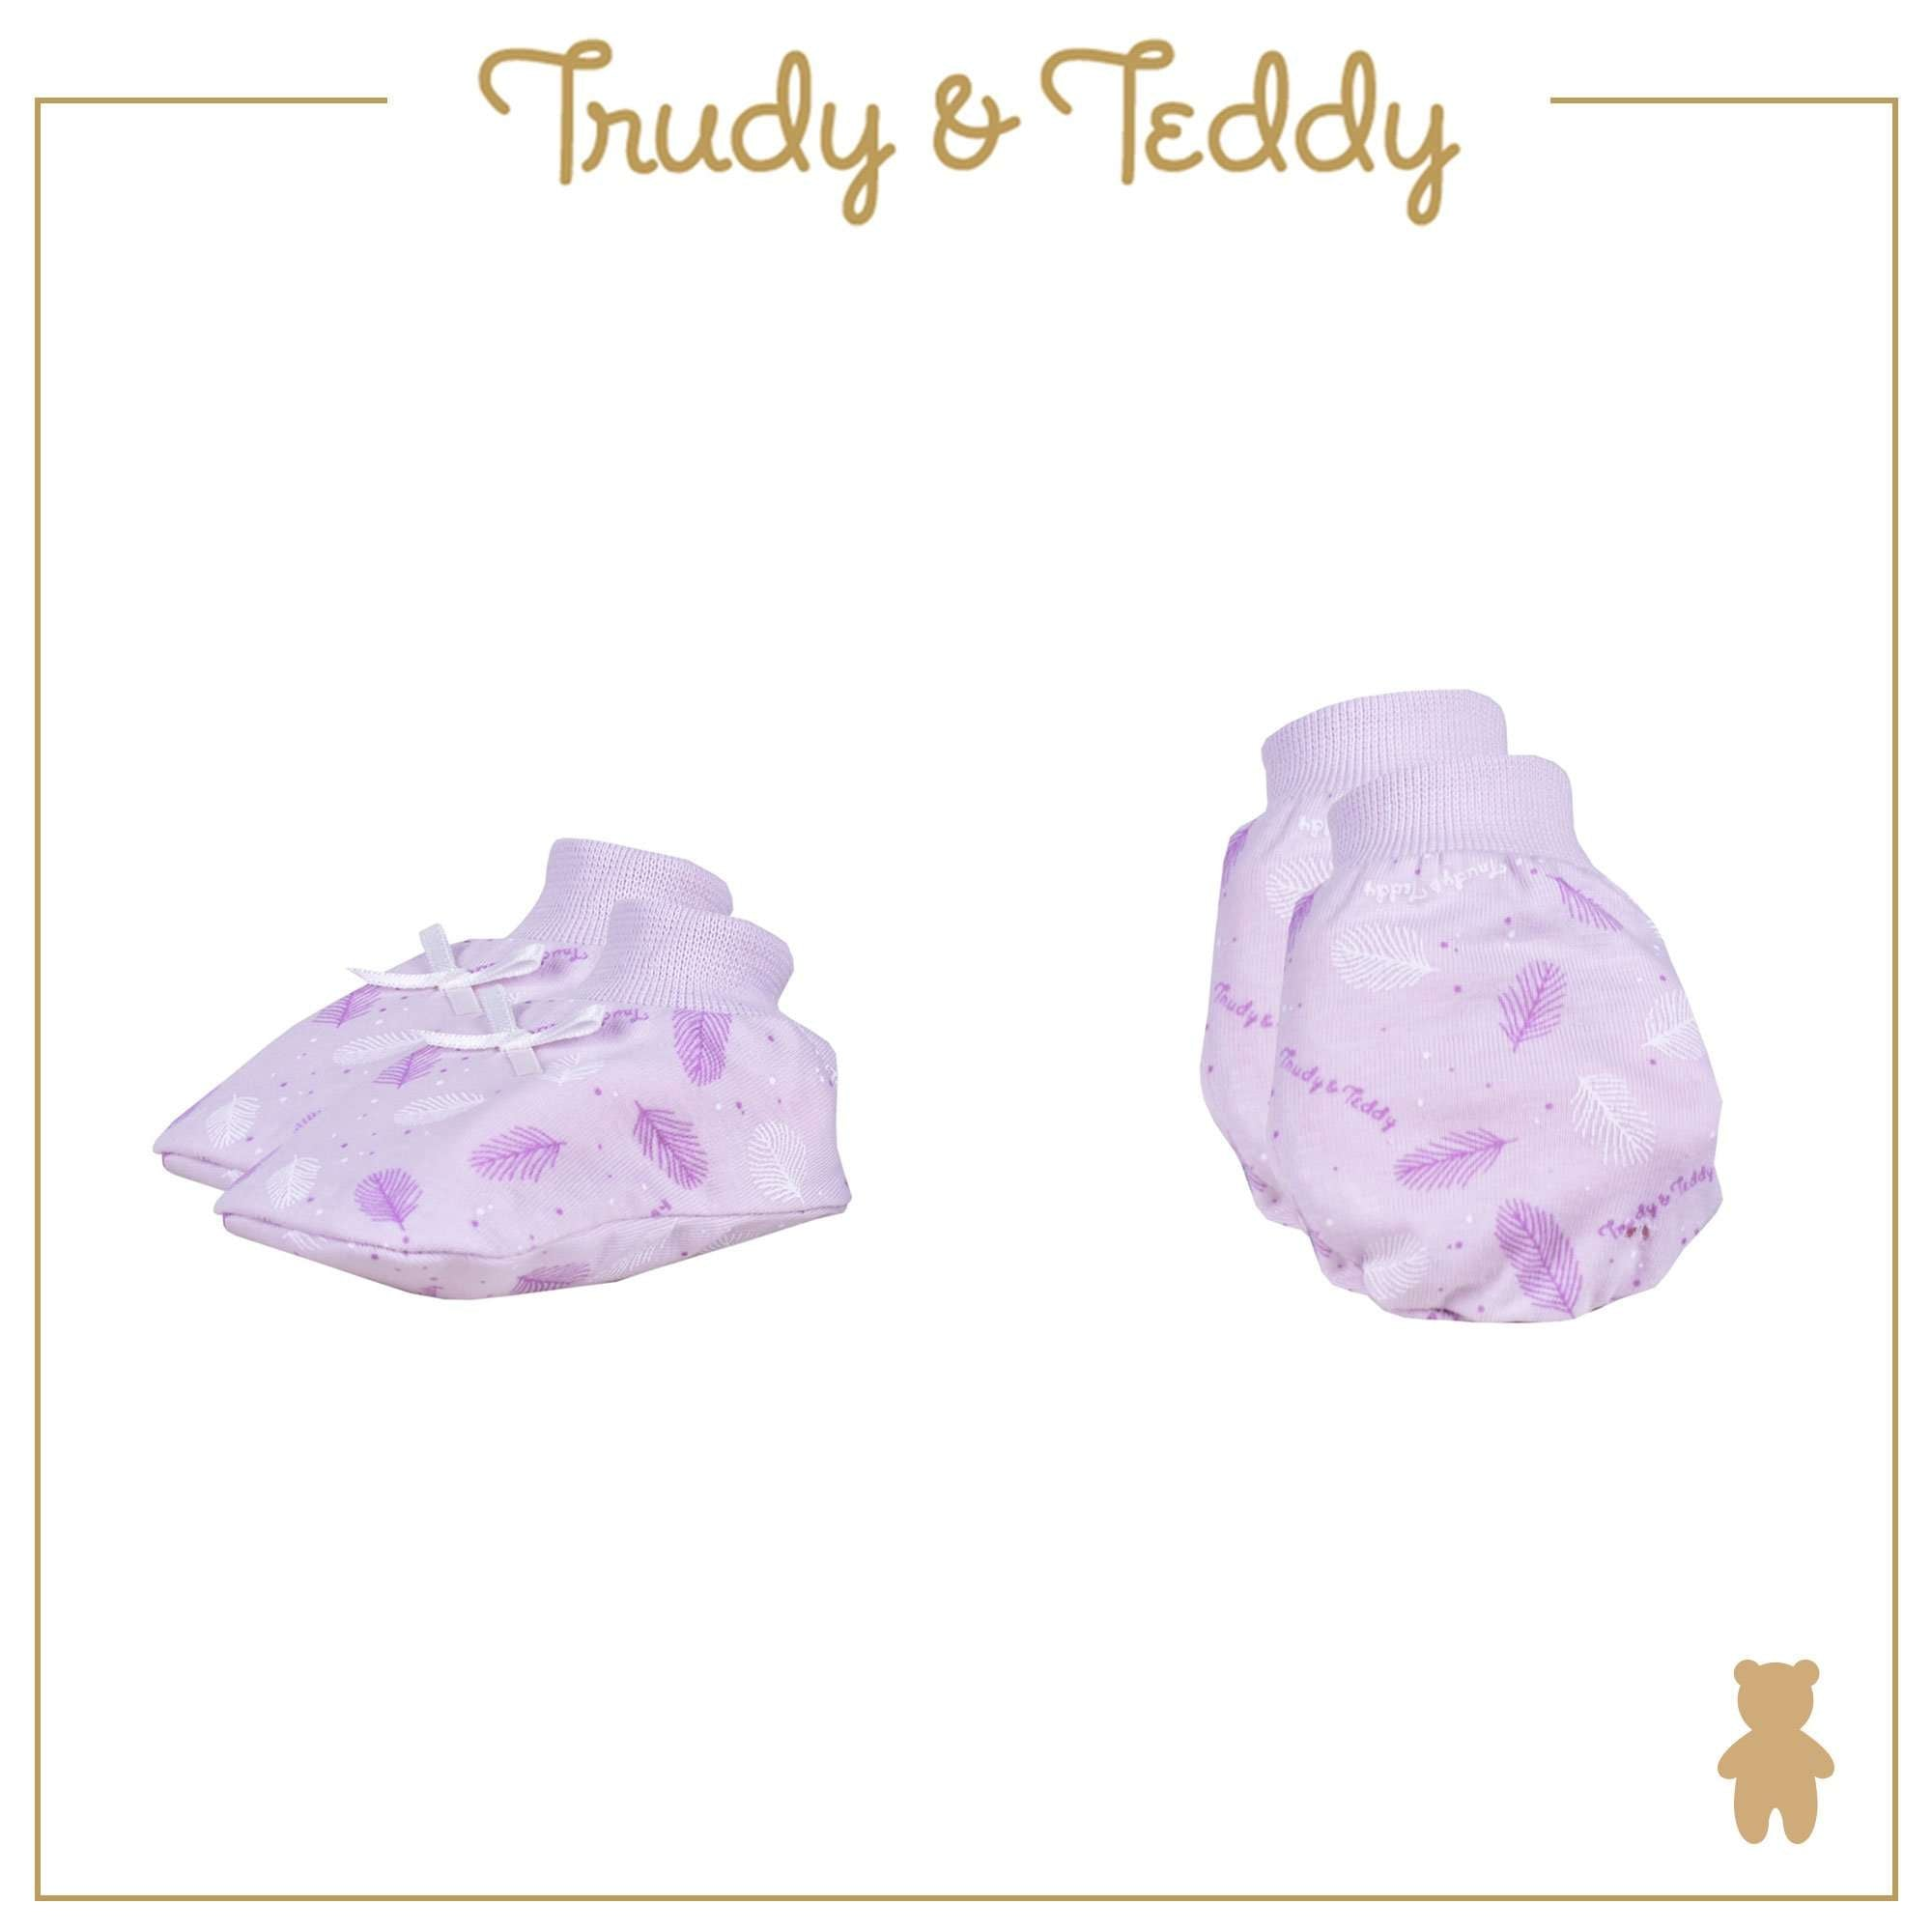 Trudy & Teddy Baby Girl Mitten & Booties 820031-701 : Buy Trudy & Teddy online at CMG.MY